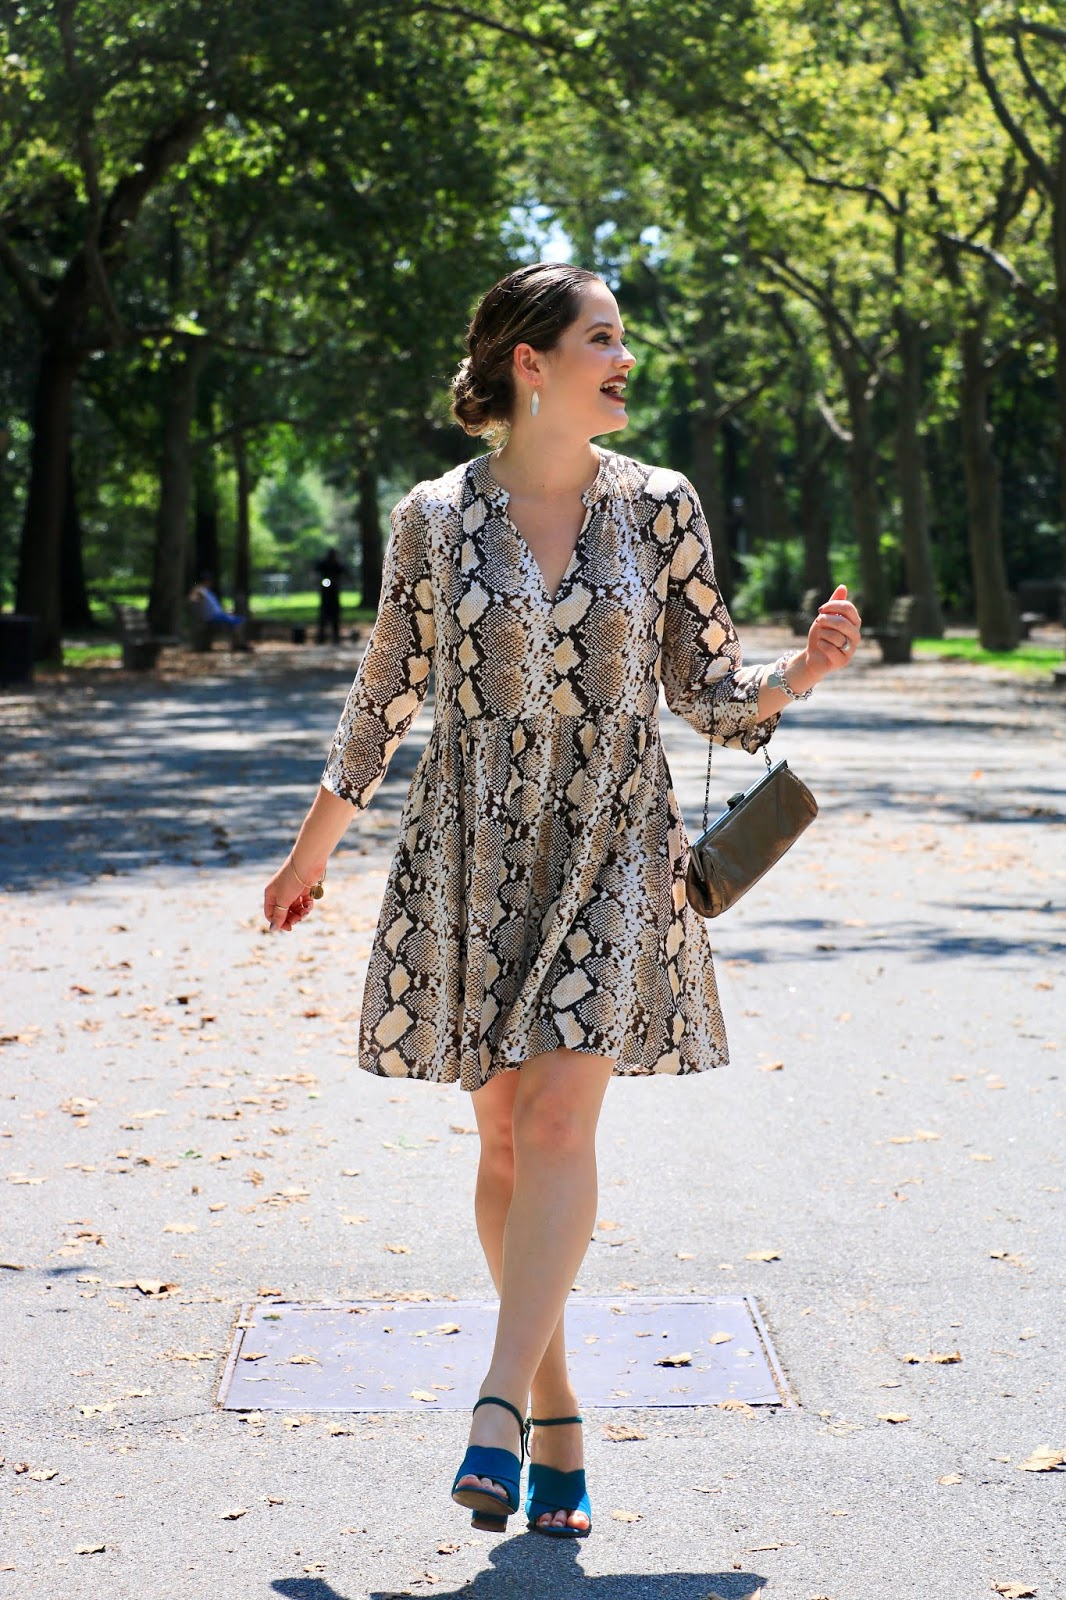 Nyc fashion blogger Kathleen Harper wearing a snake print dress for fall 2019.